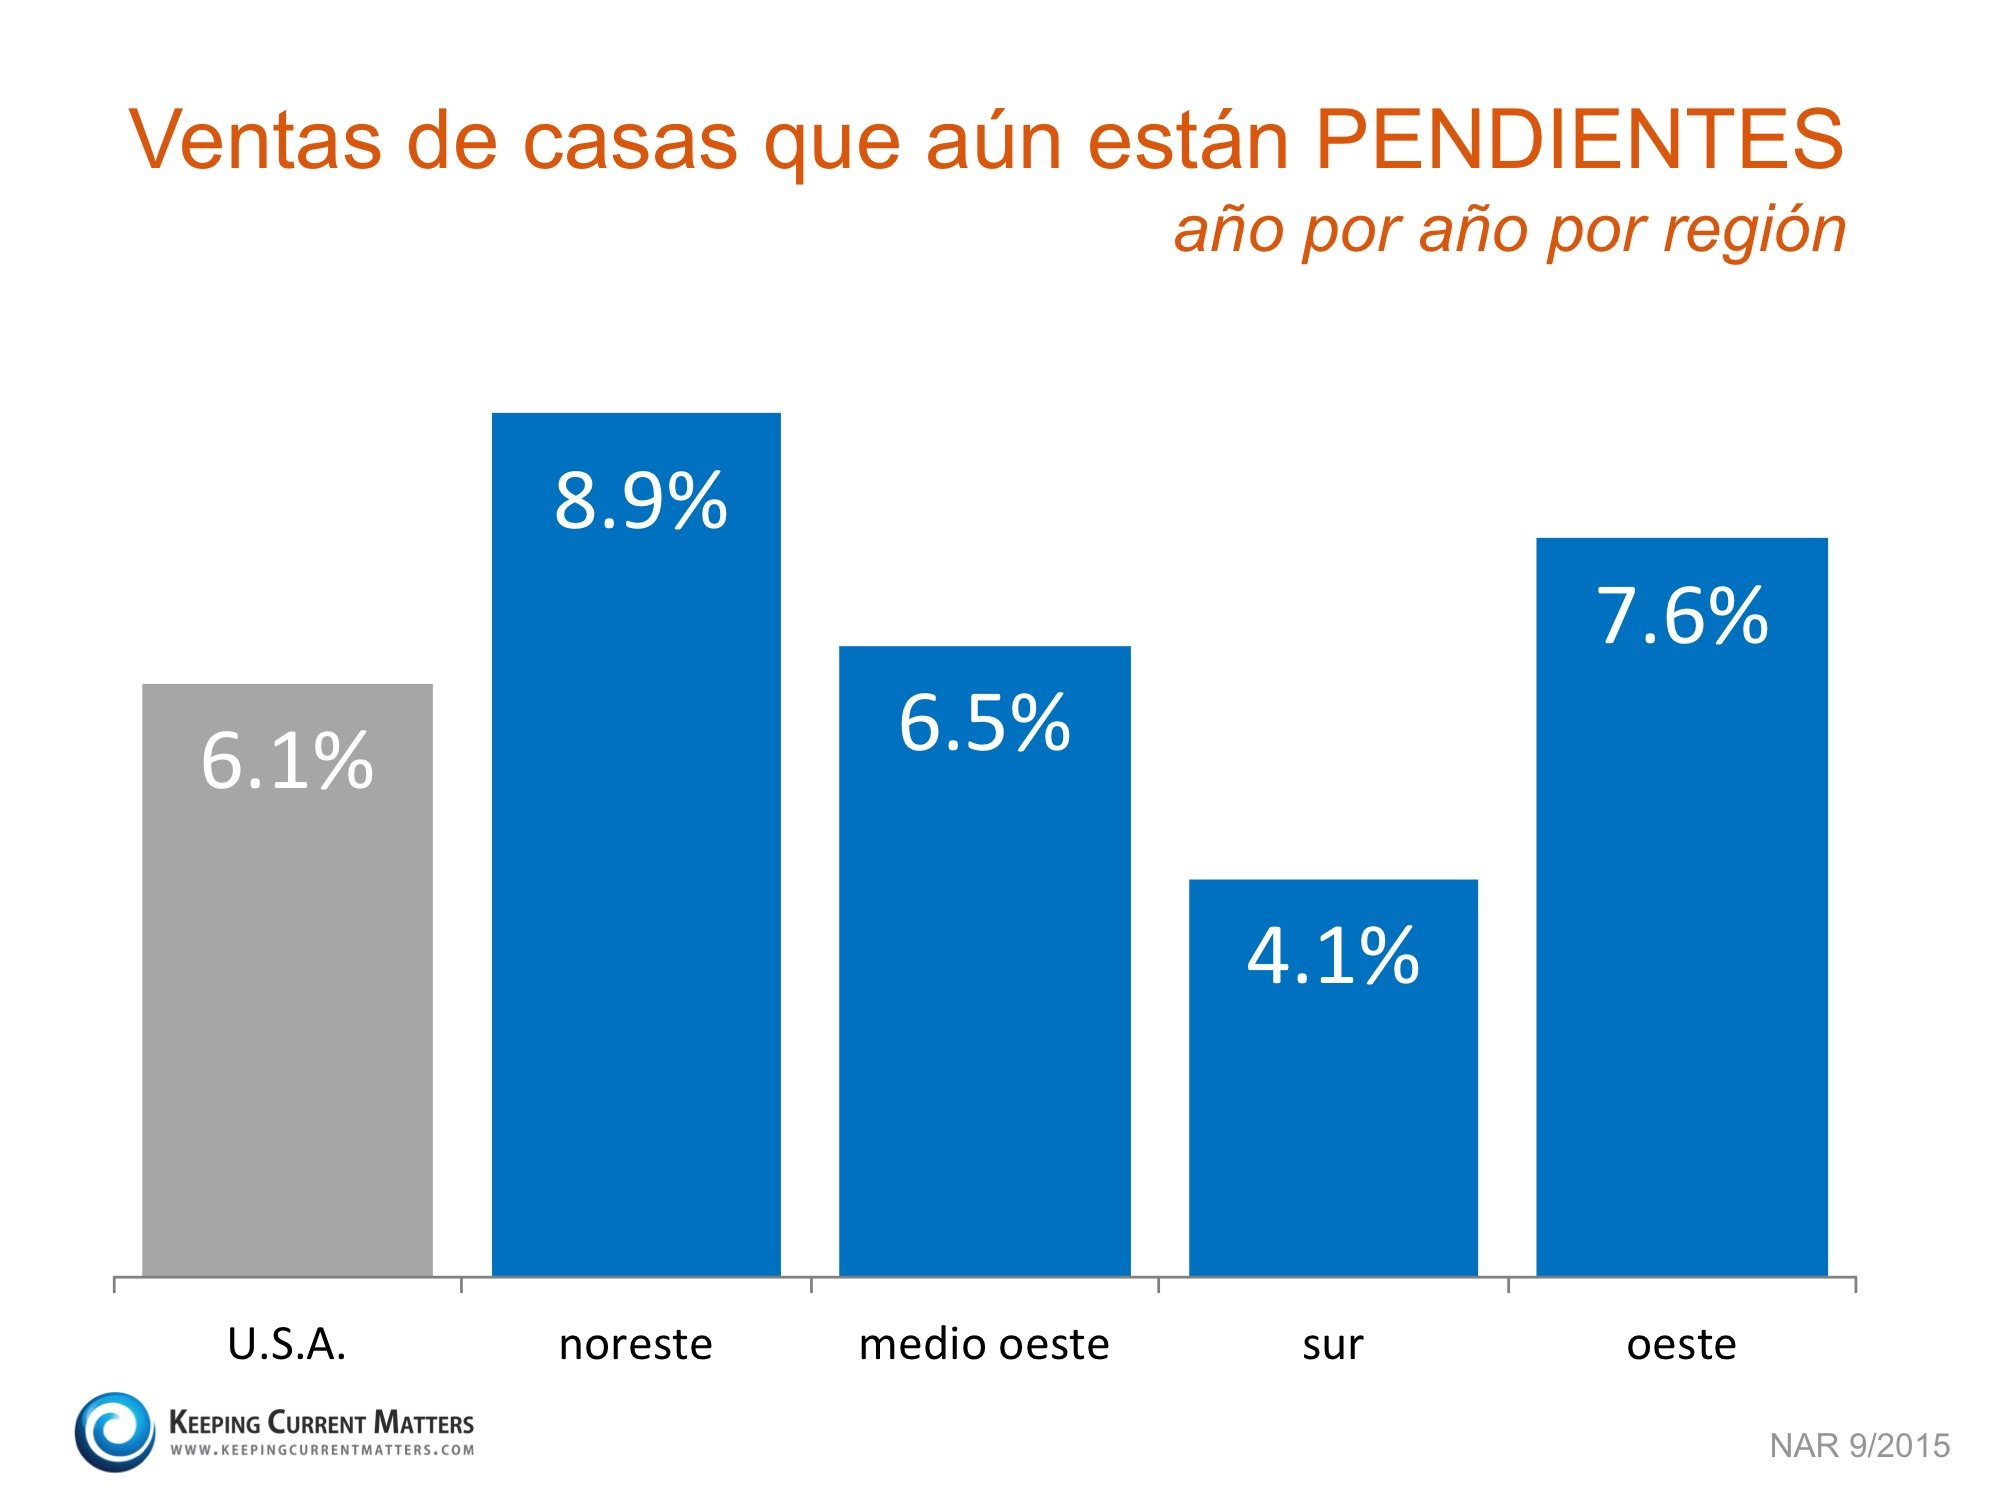 Ventas de casas aun pendientes por region  | Keeping Current Matters